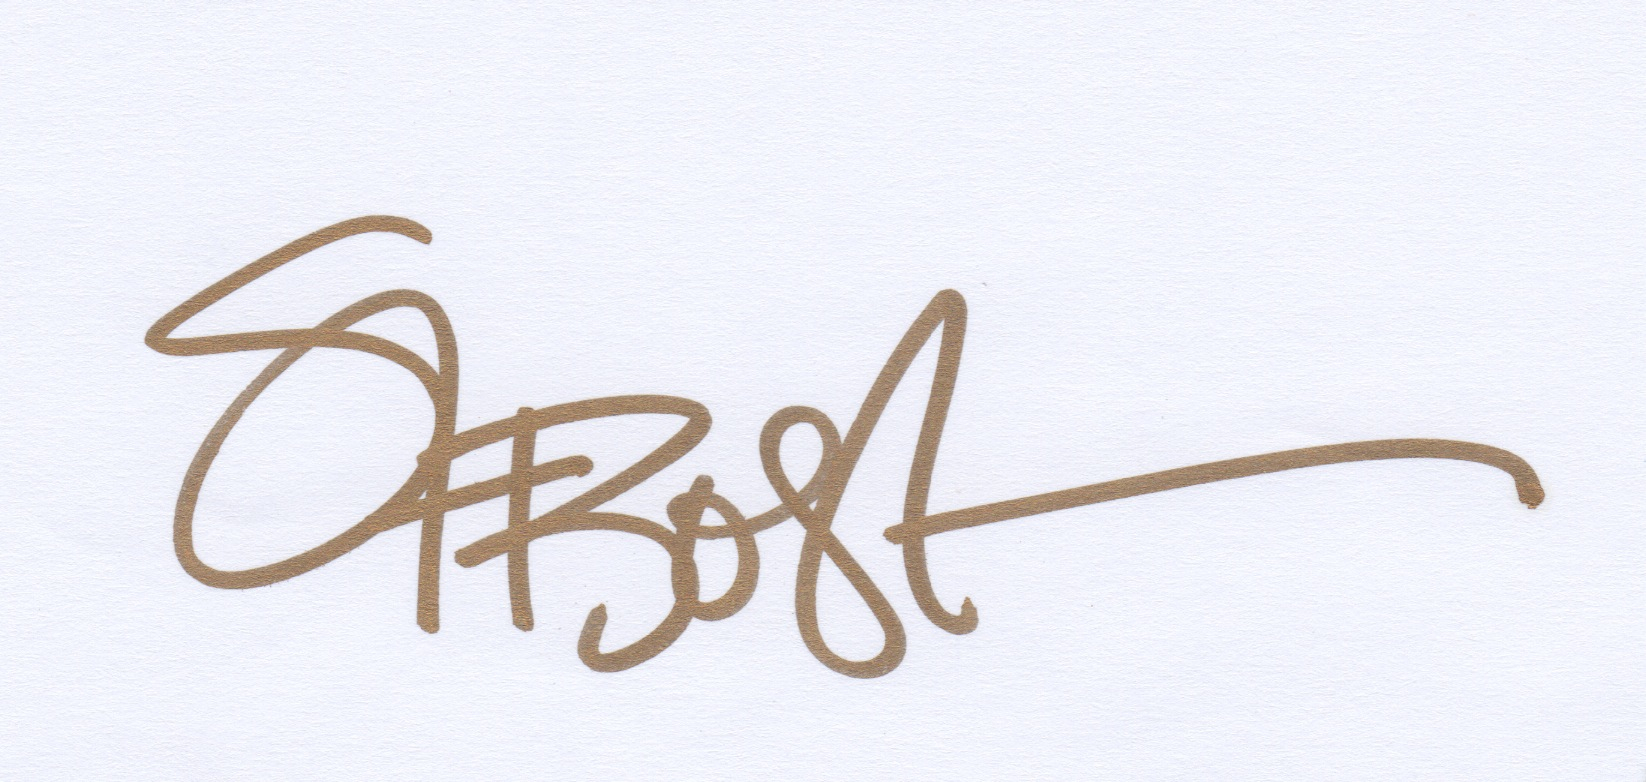 Stephanie Bostock ART Signature